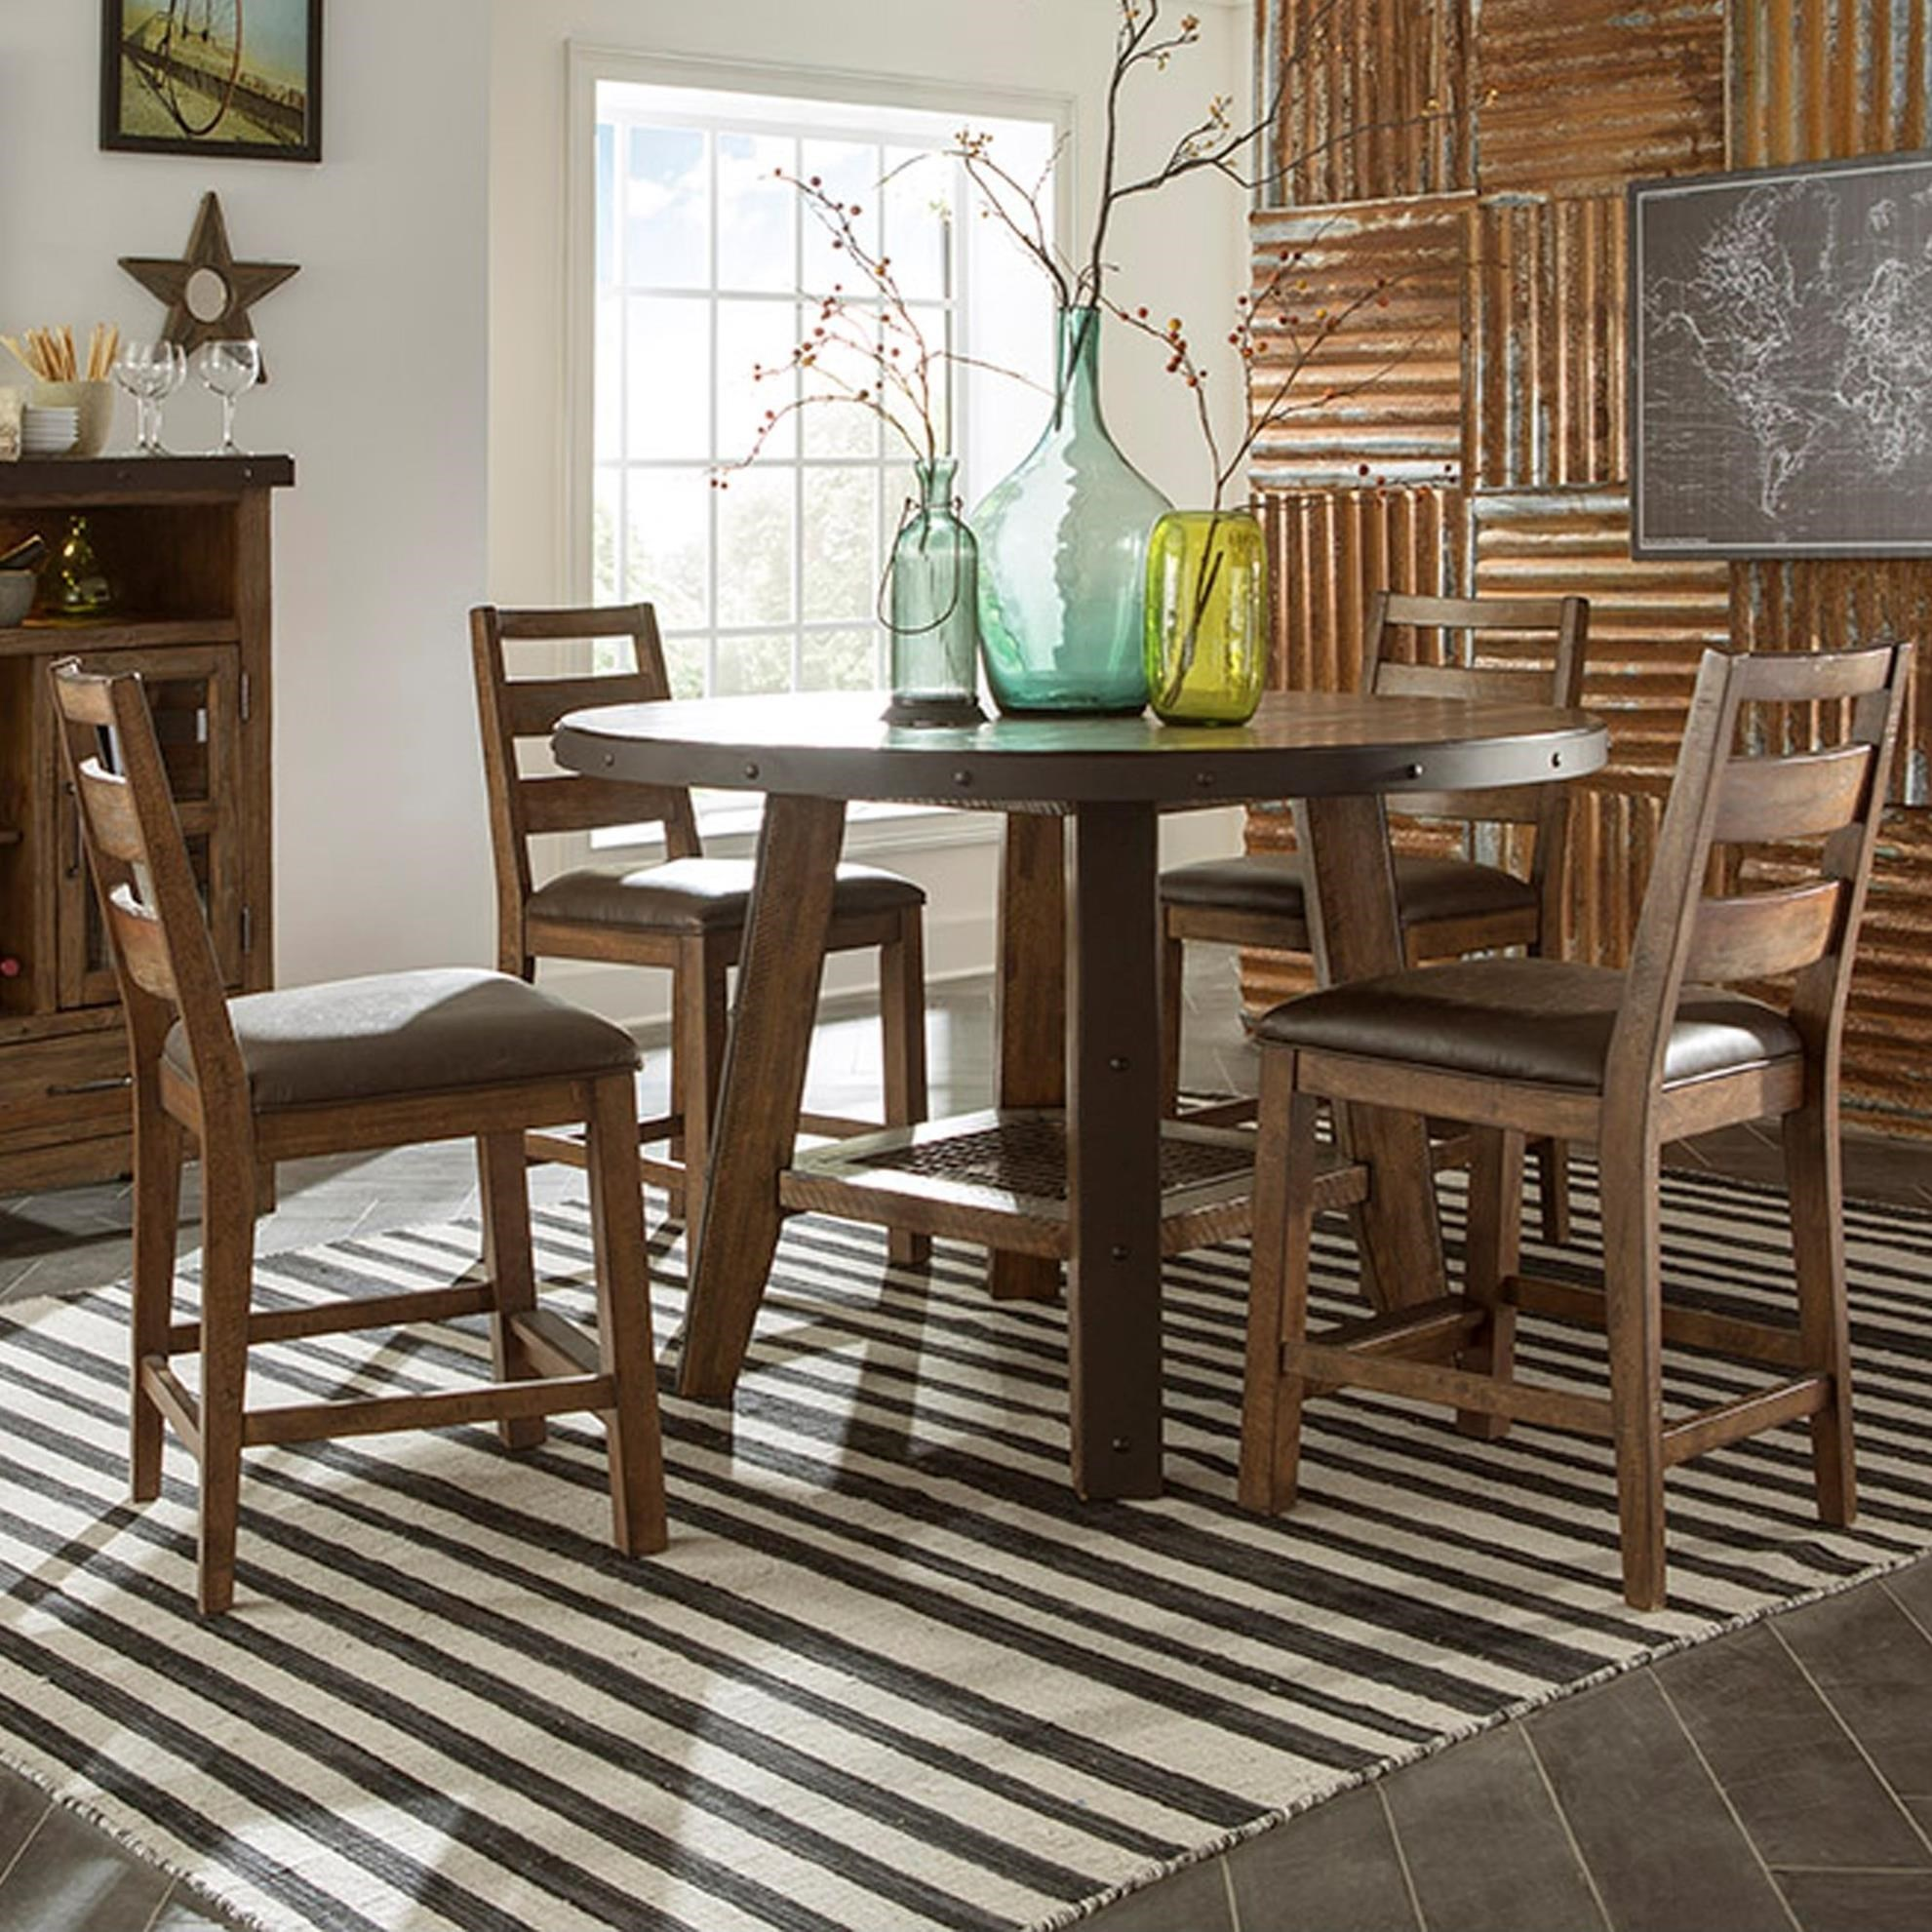 Intercon Taos 5 Piece Rustic Round Counter Table Set & Intercon Taos 5 Piece Rustic Round Counter Table Set | Furniture ...